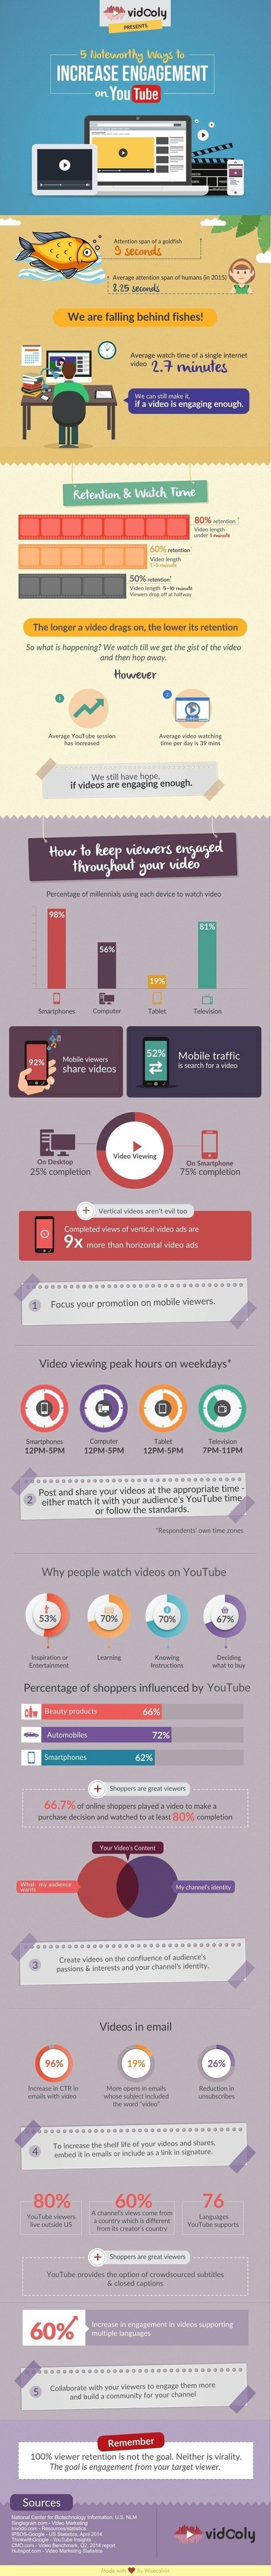 Five Noteworthy Ways to Increase Engagement on YouTube [Infographic] | Integrated Brand Communications | Scoop.it